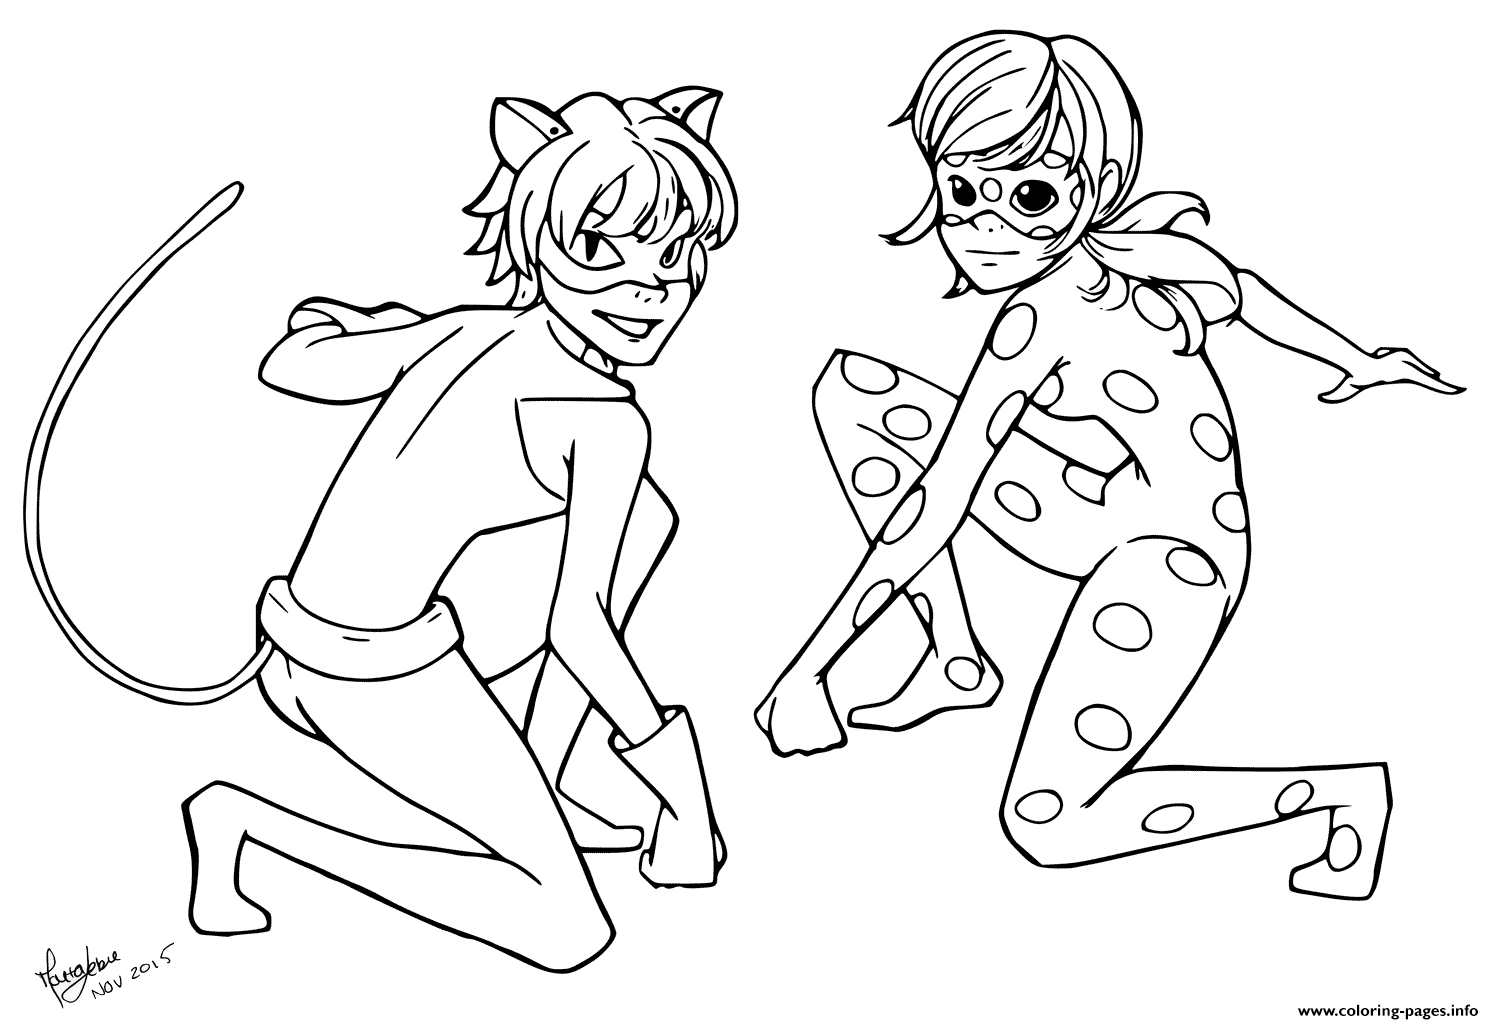 catty noir coloring pages miraculous tales of ladybug cat noir coloring pages catty noir pages coloring